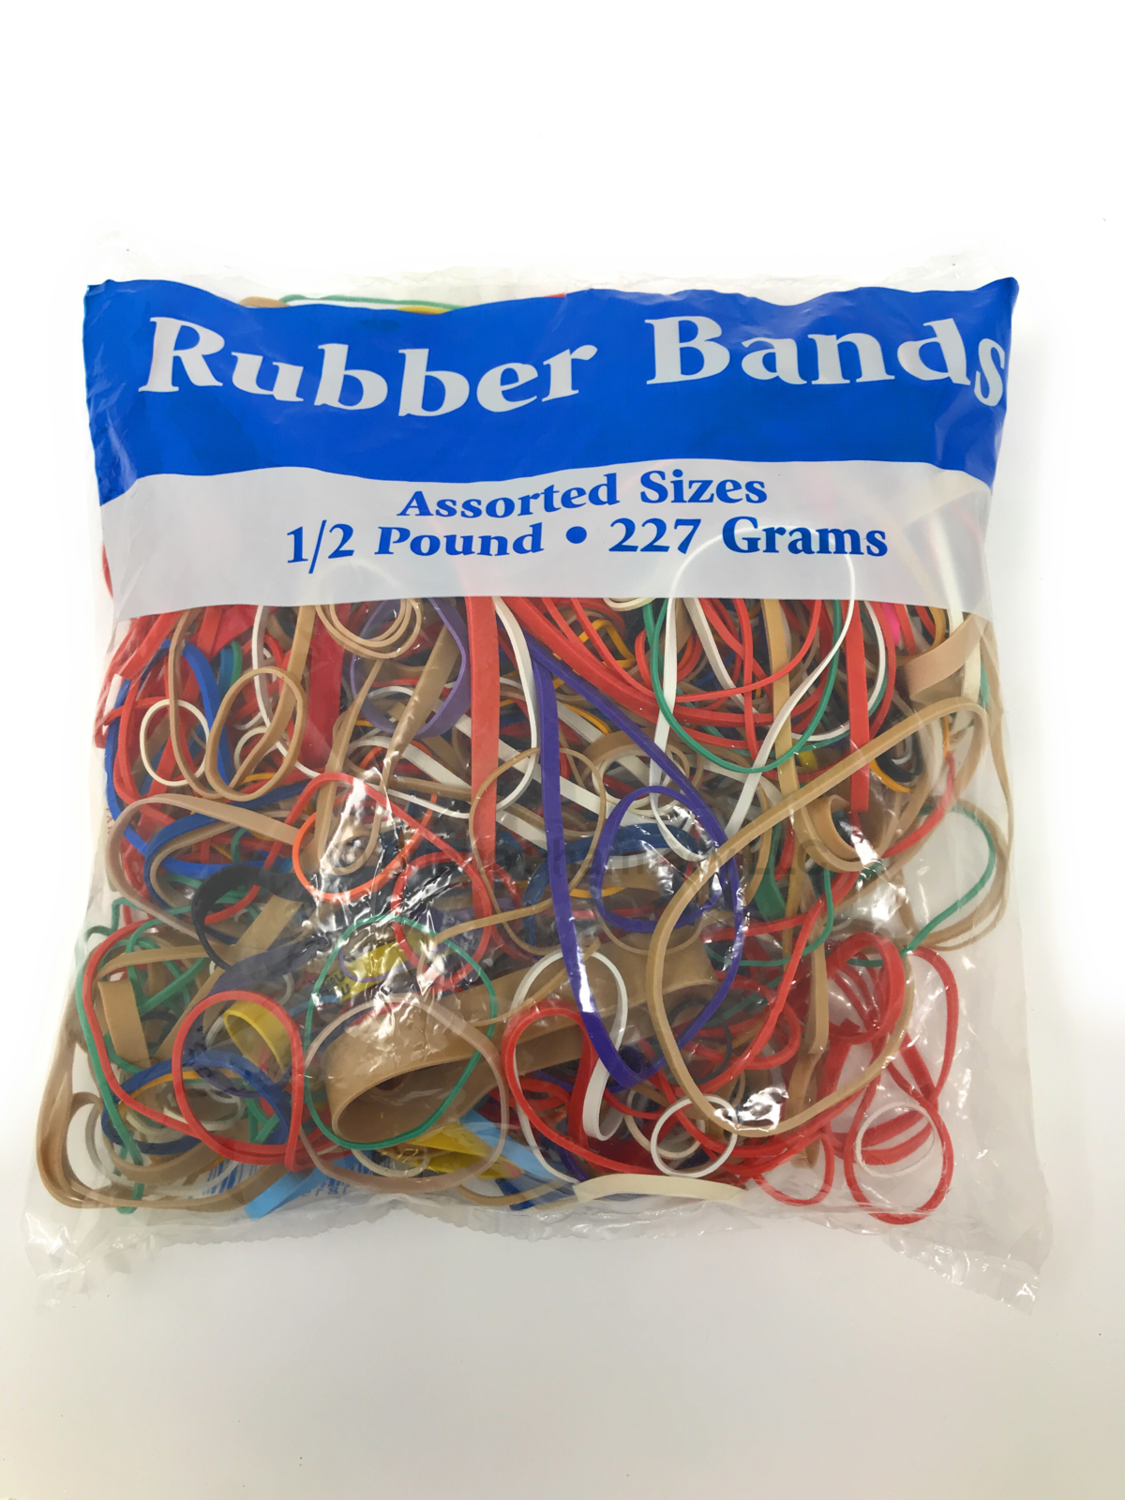 Rubber Bands 1/2 Pound Assorted Sizes